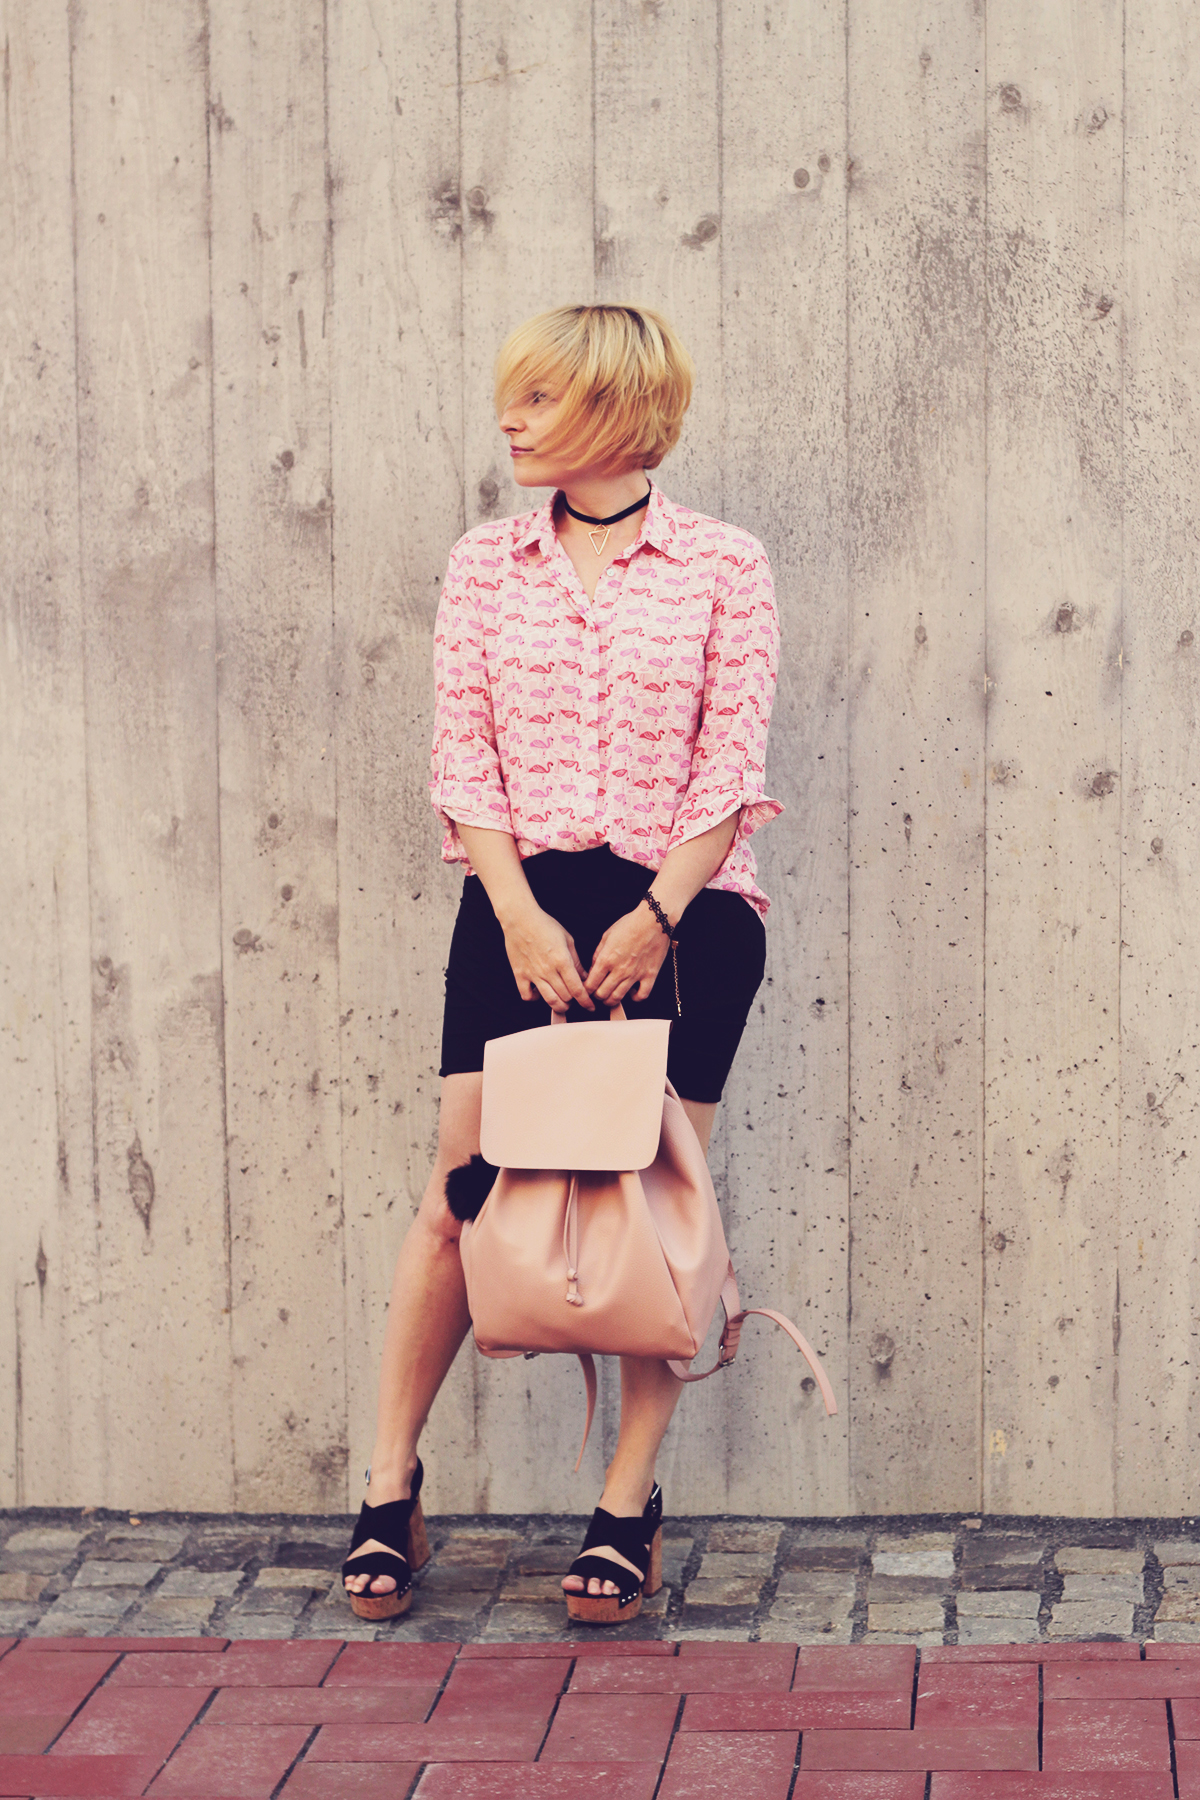 pink flamingo shirt and backpack with skirt